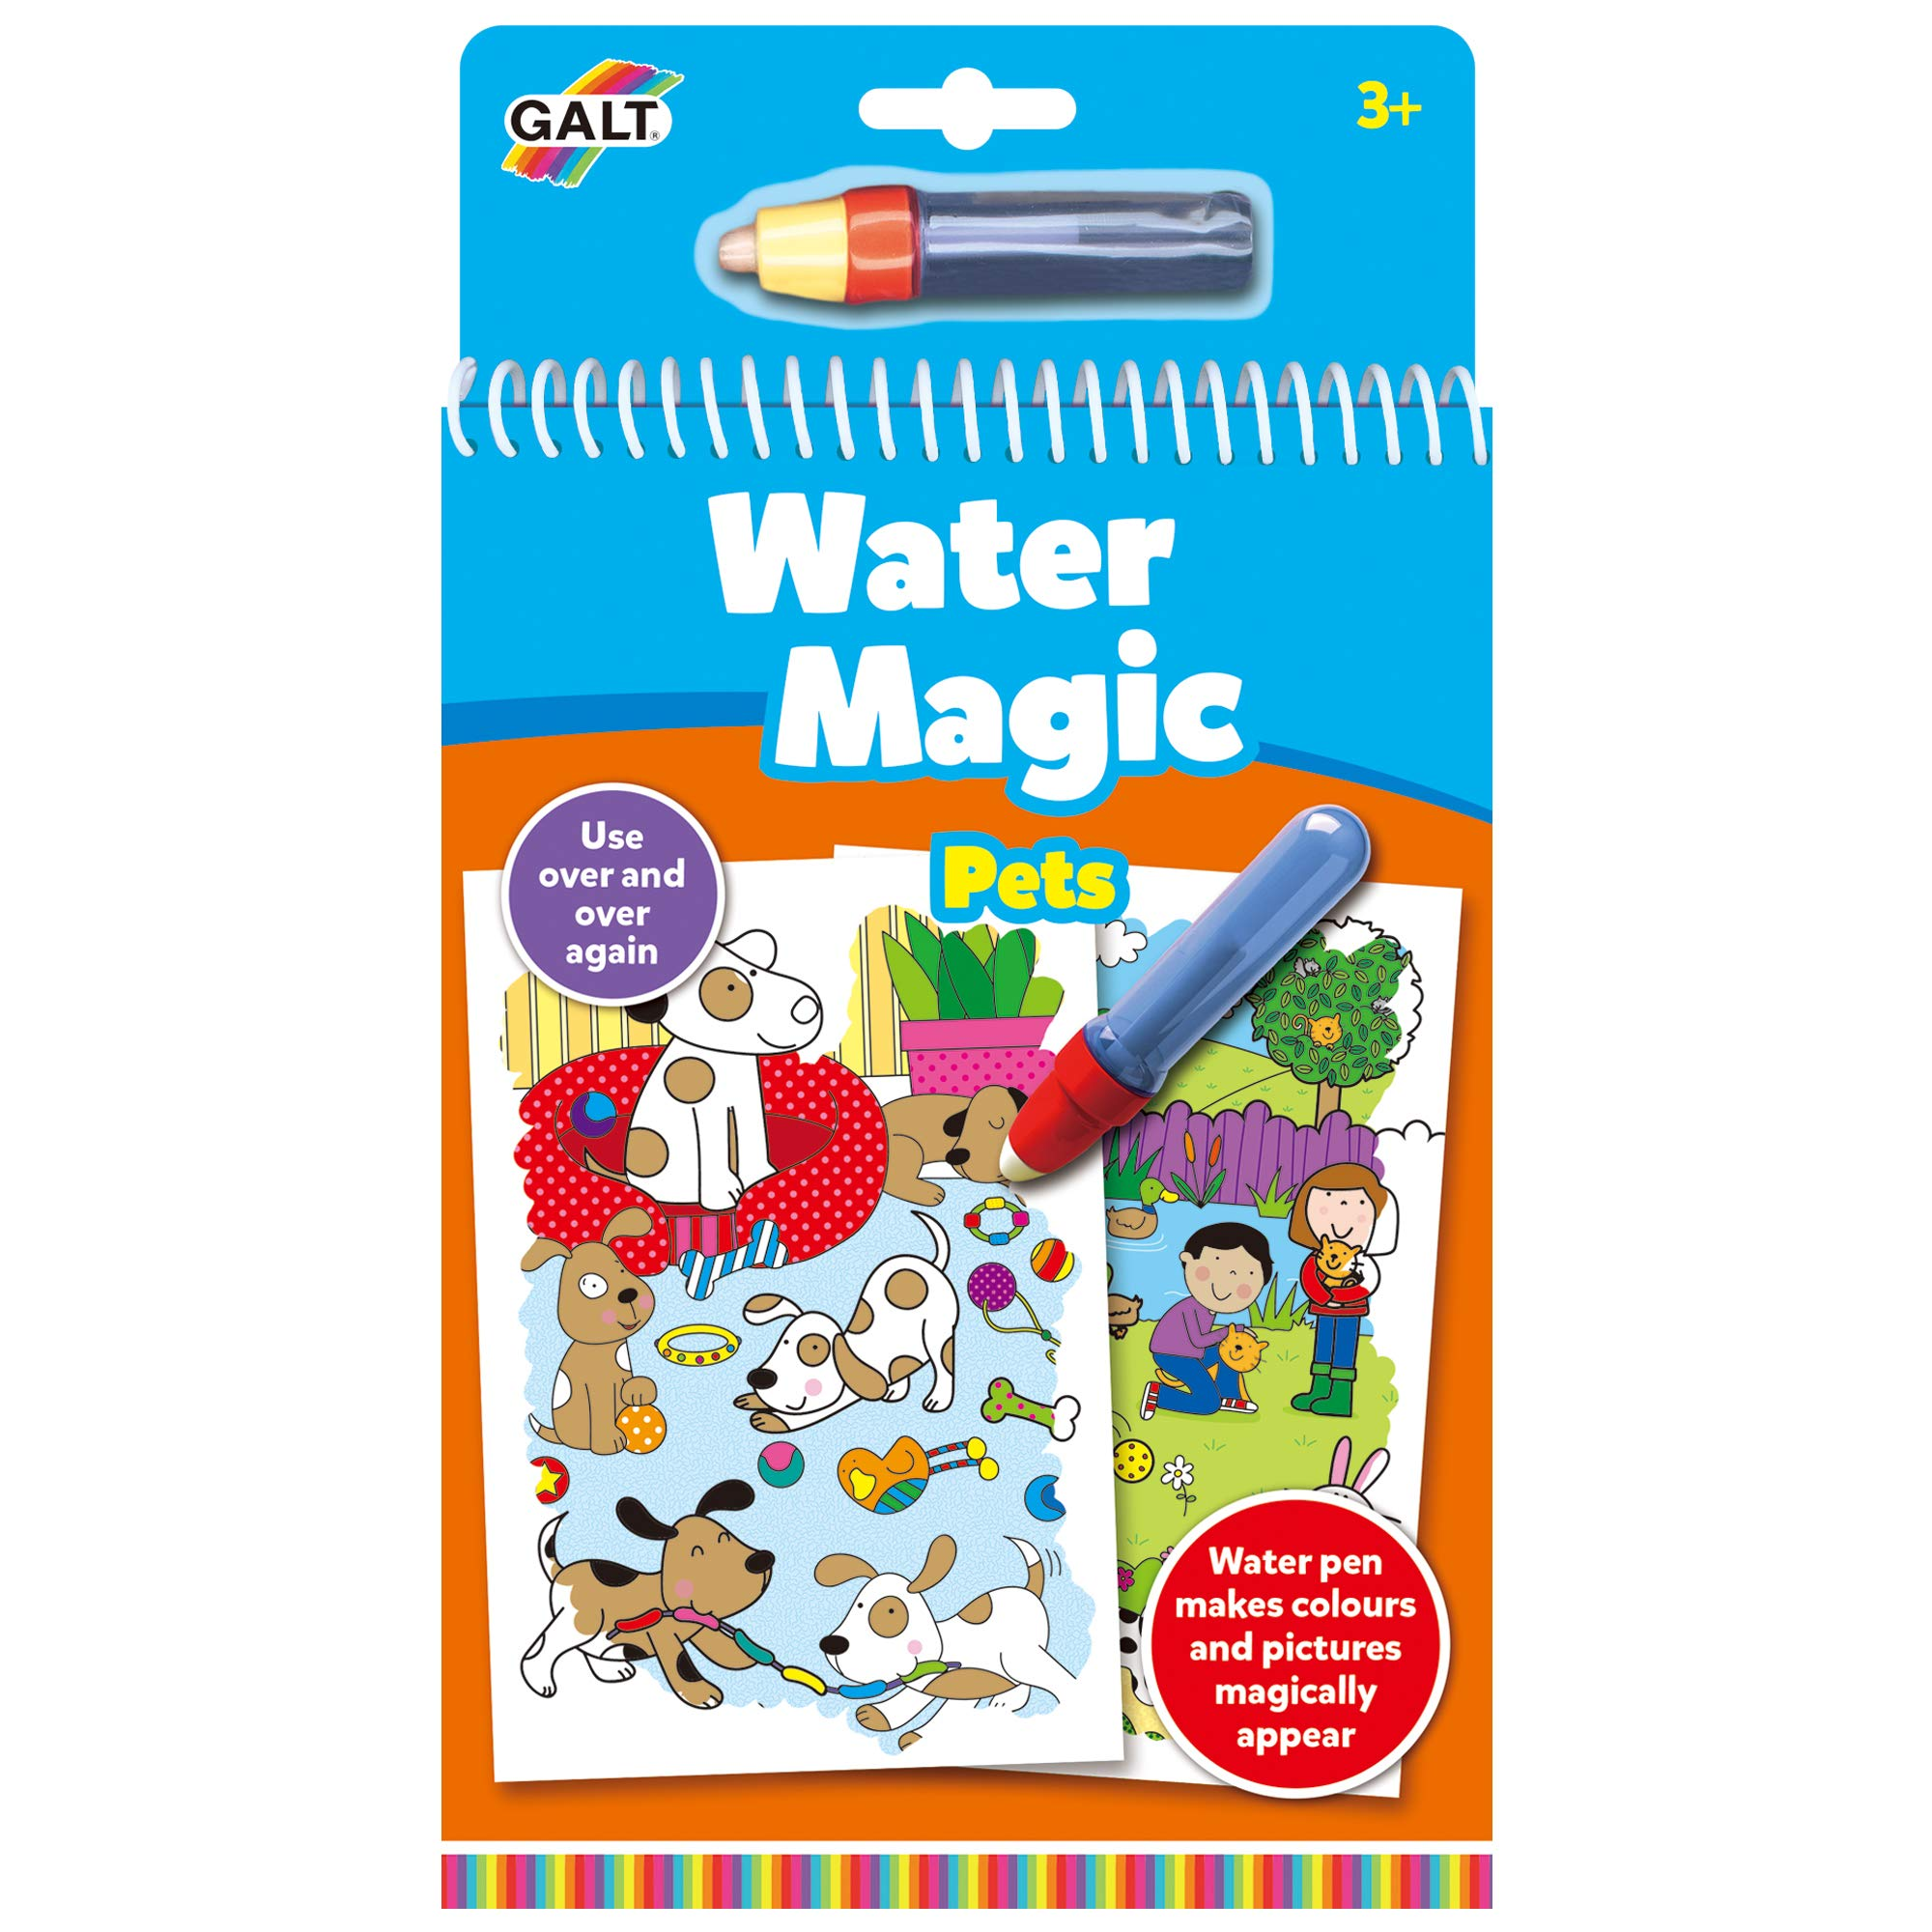 Galt Toys, Water Magic - Pets, Colouring Book for Children, Ages 3 Years Plus